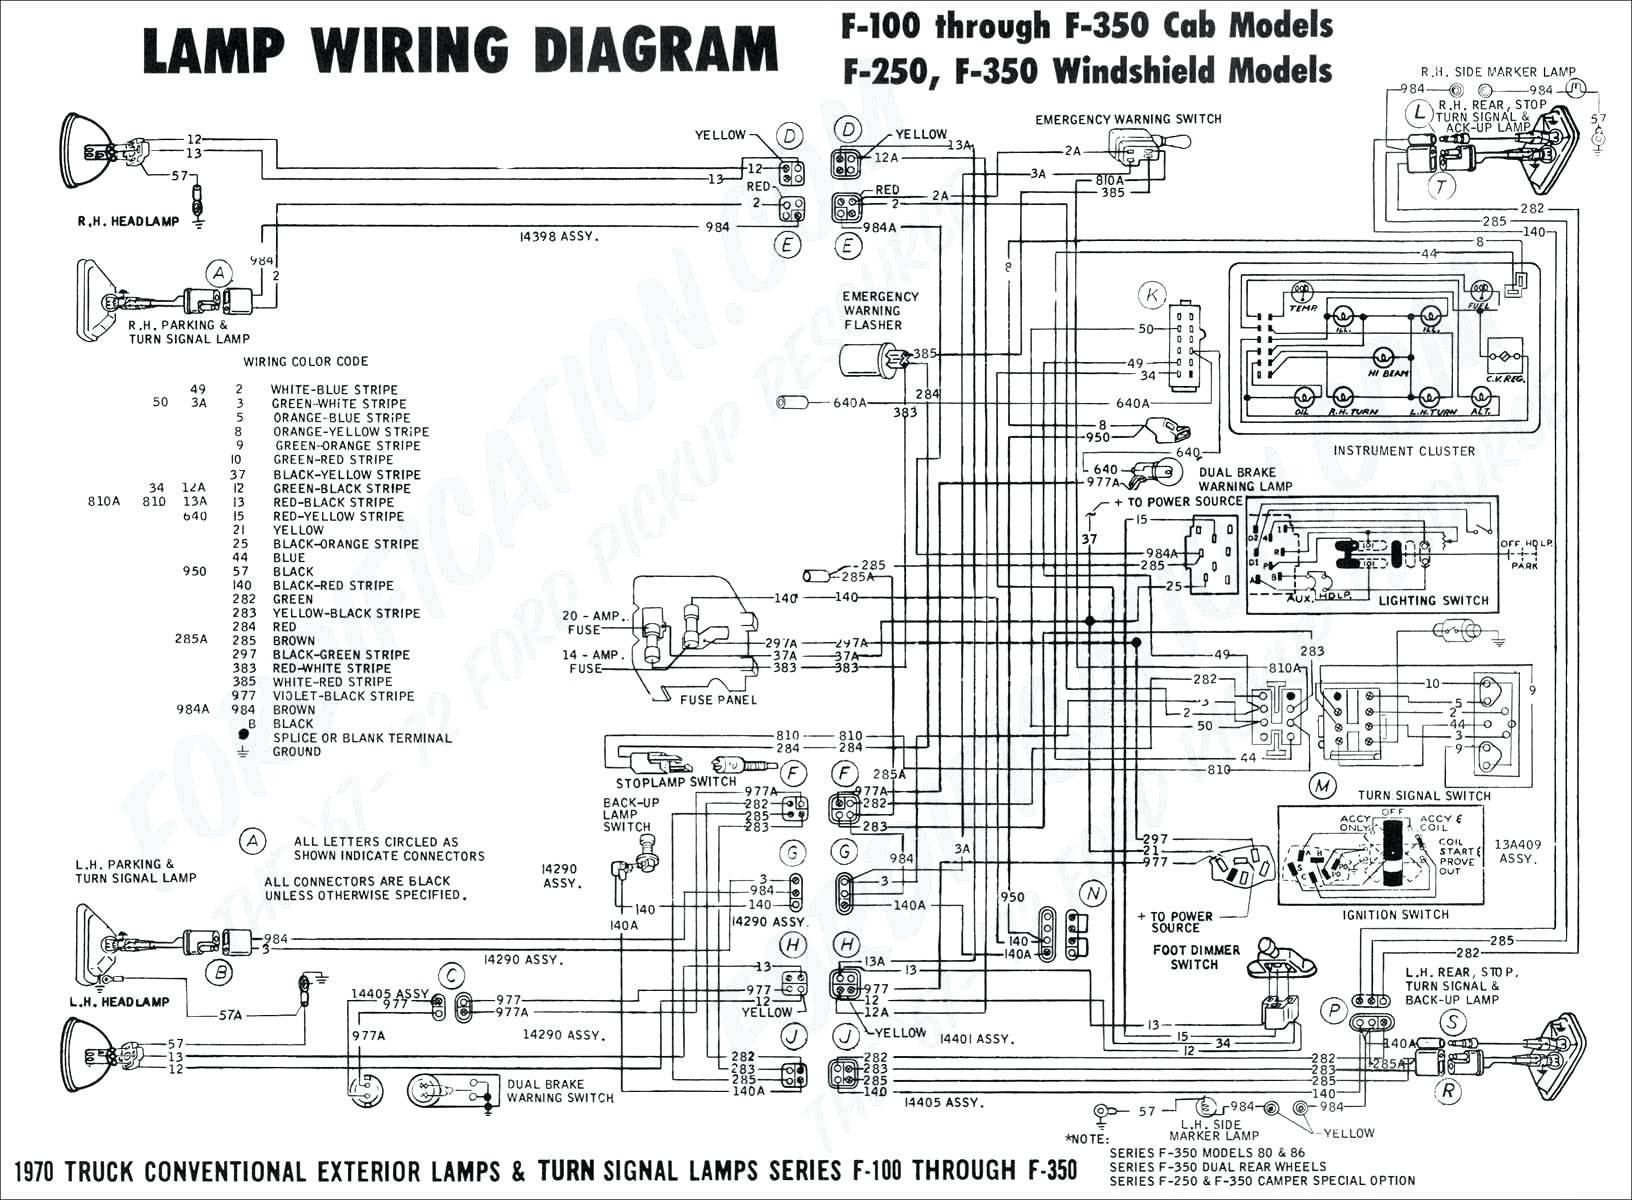 Get 2001 ford F250 Trailer Wiring Diagram Sample